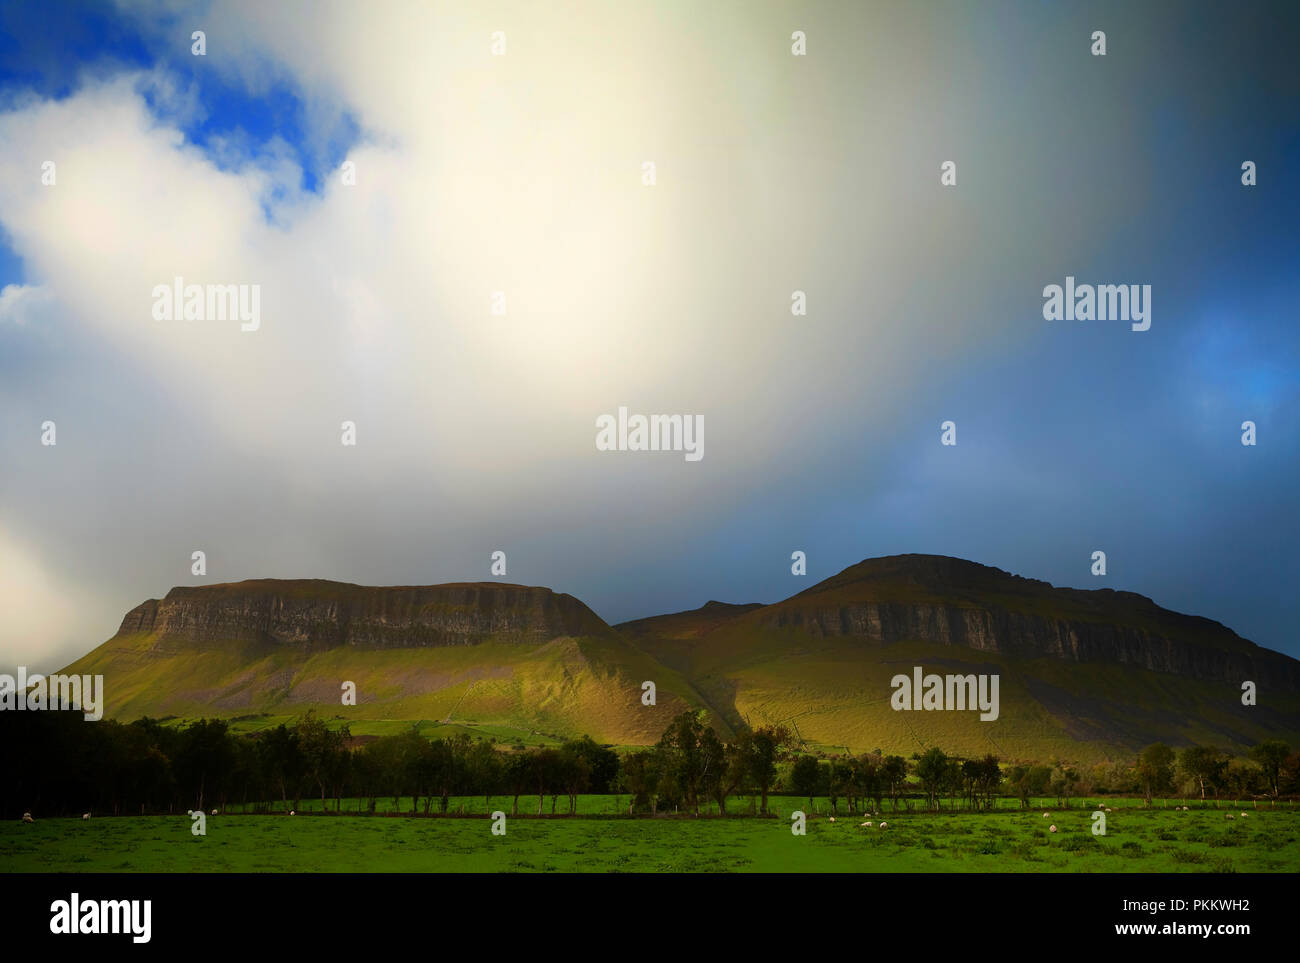 Stormy Weather Over King's Mountain and Ben Bulben aka Benbulben, part of the Dartry Mountains,sometimes called 'Yeats Country' County Sligo, Ireland - Stock Image